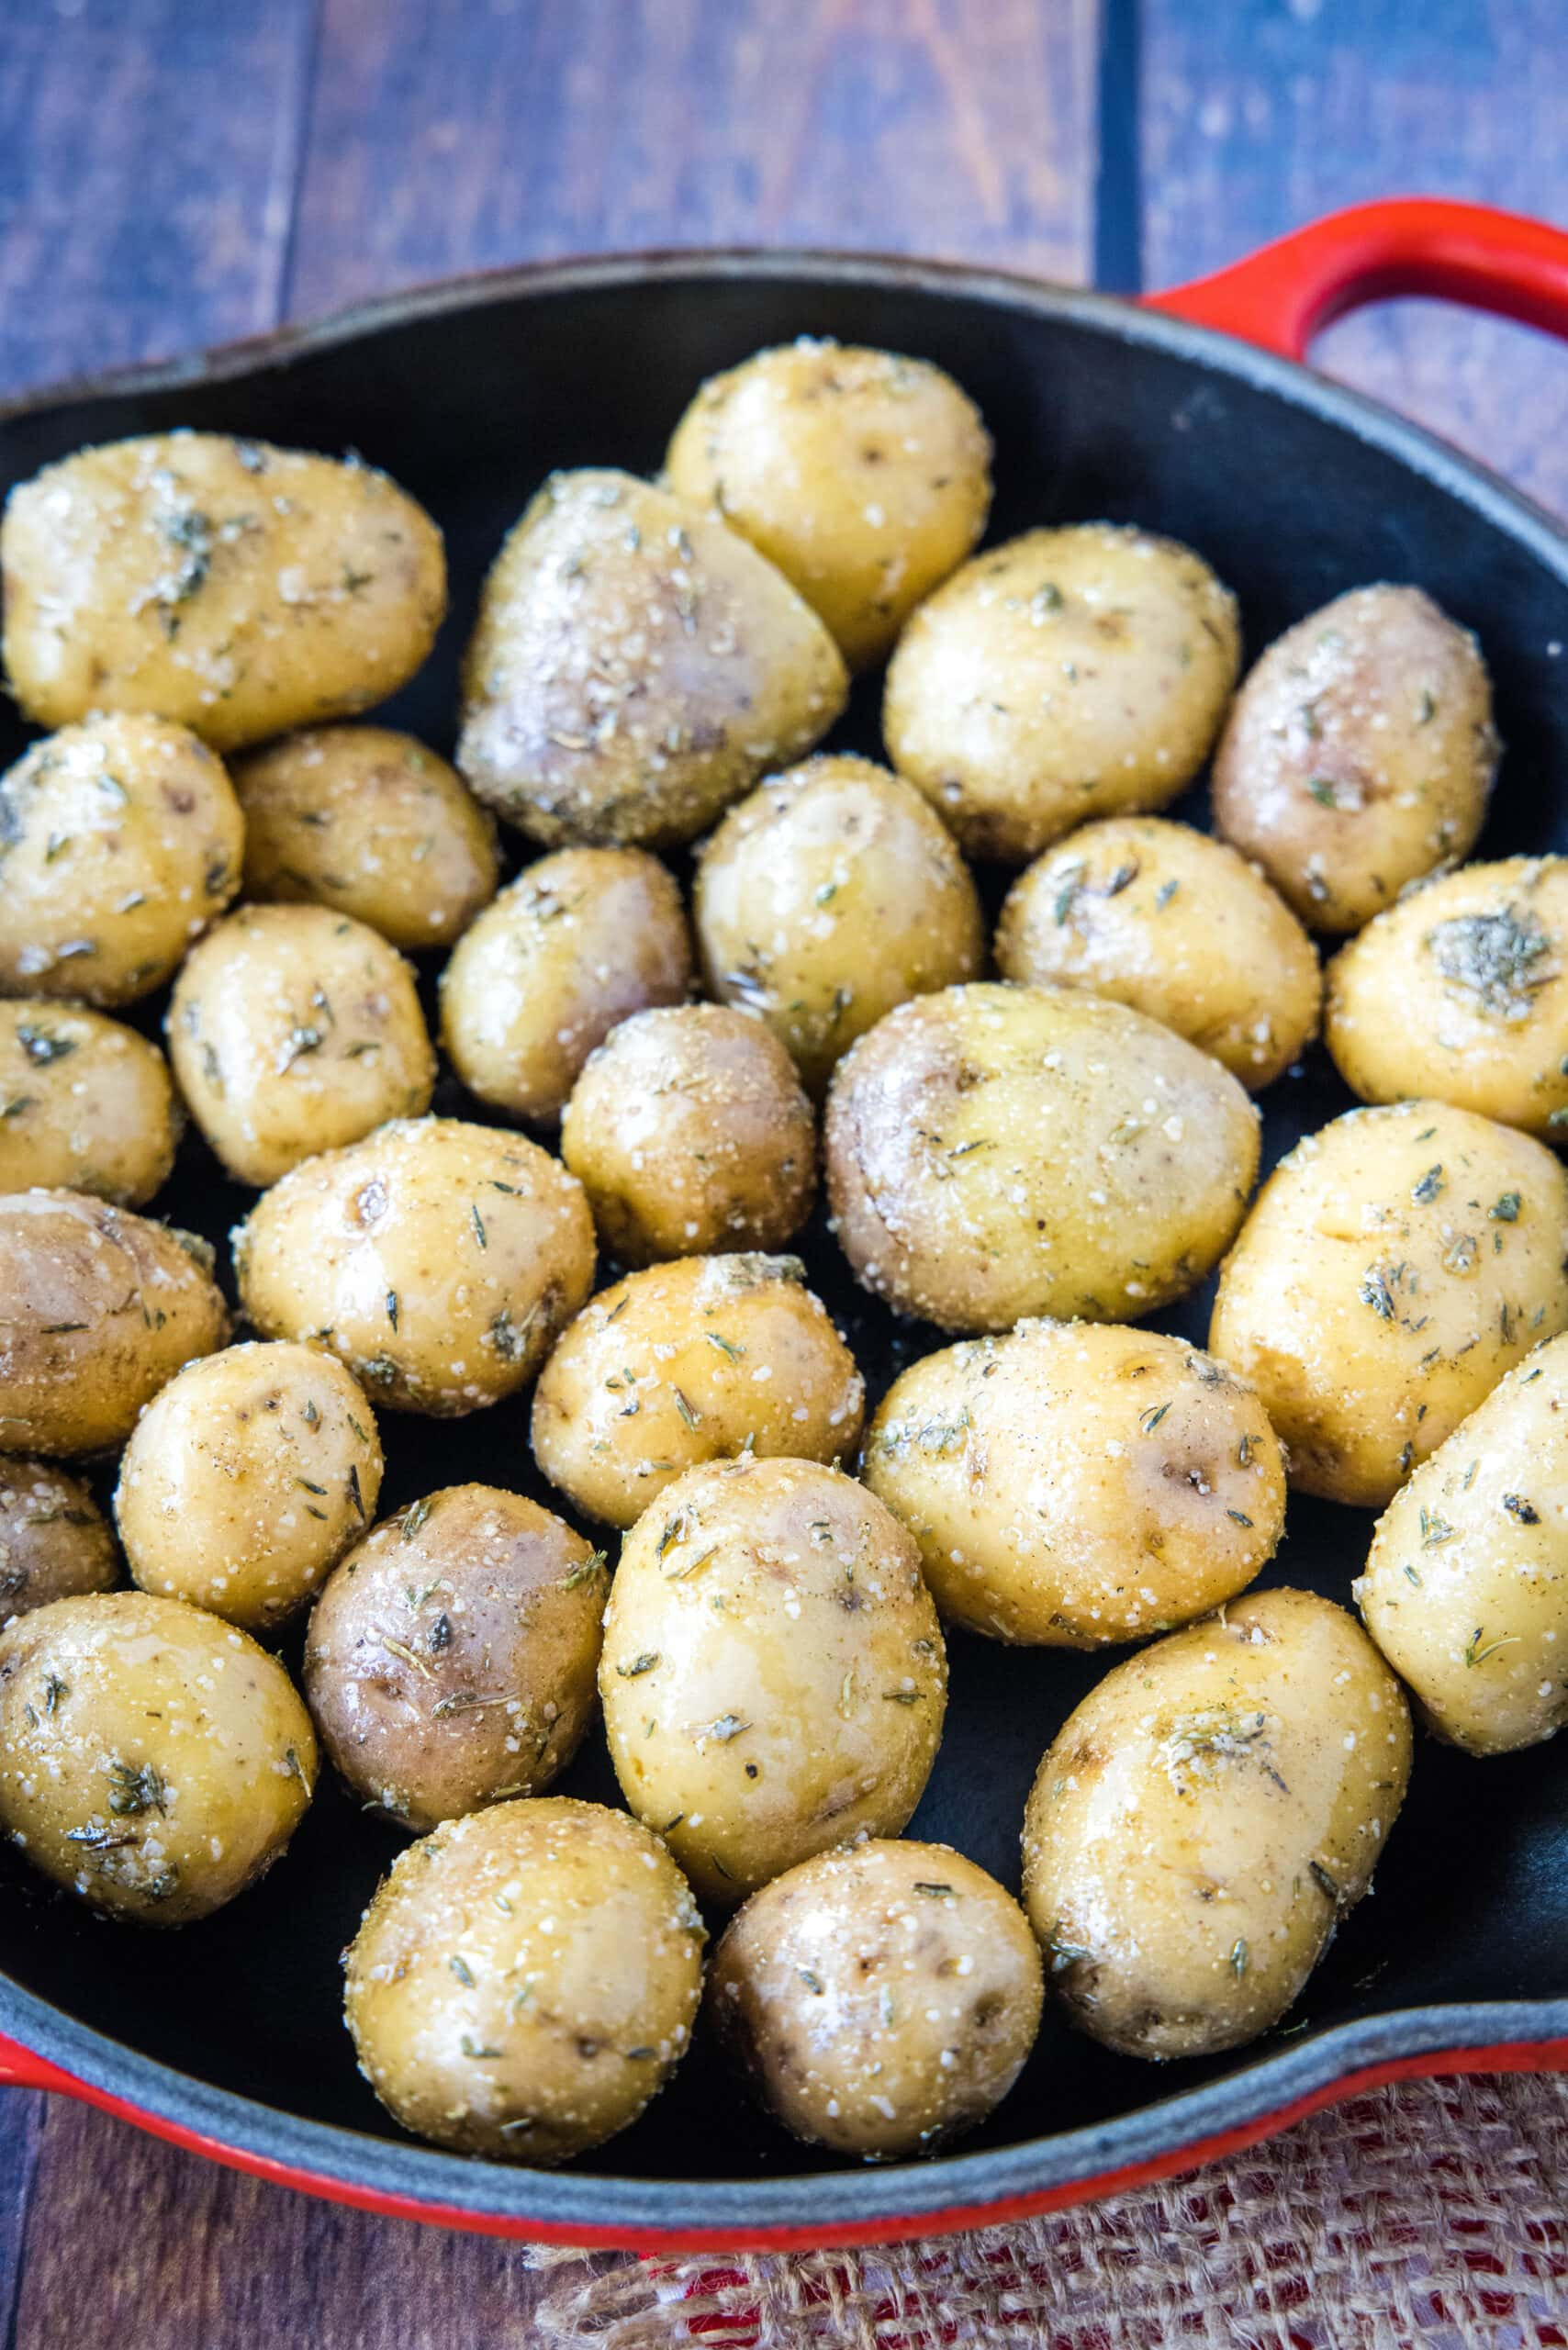 potatoes with seasoning on ready for the smoker